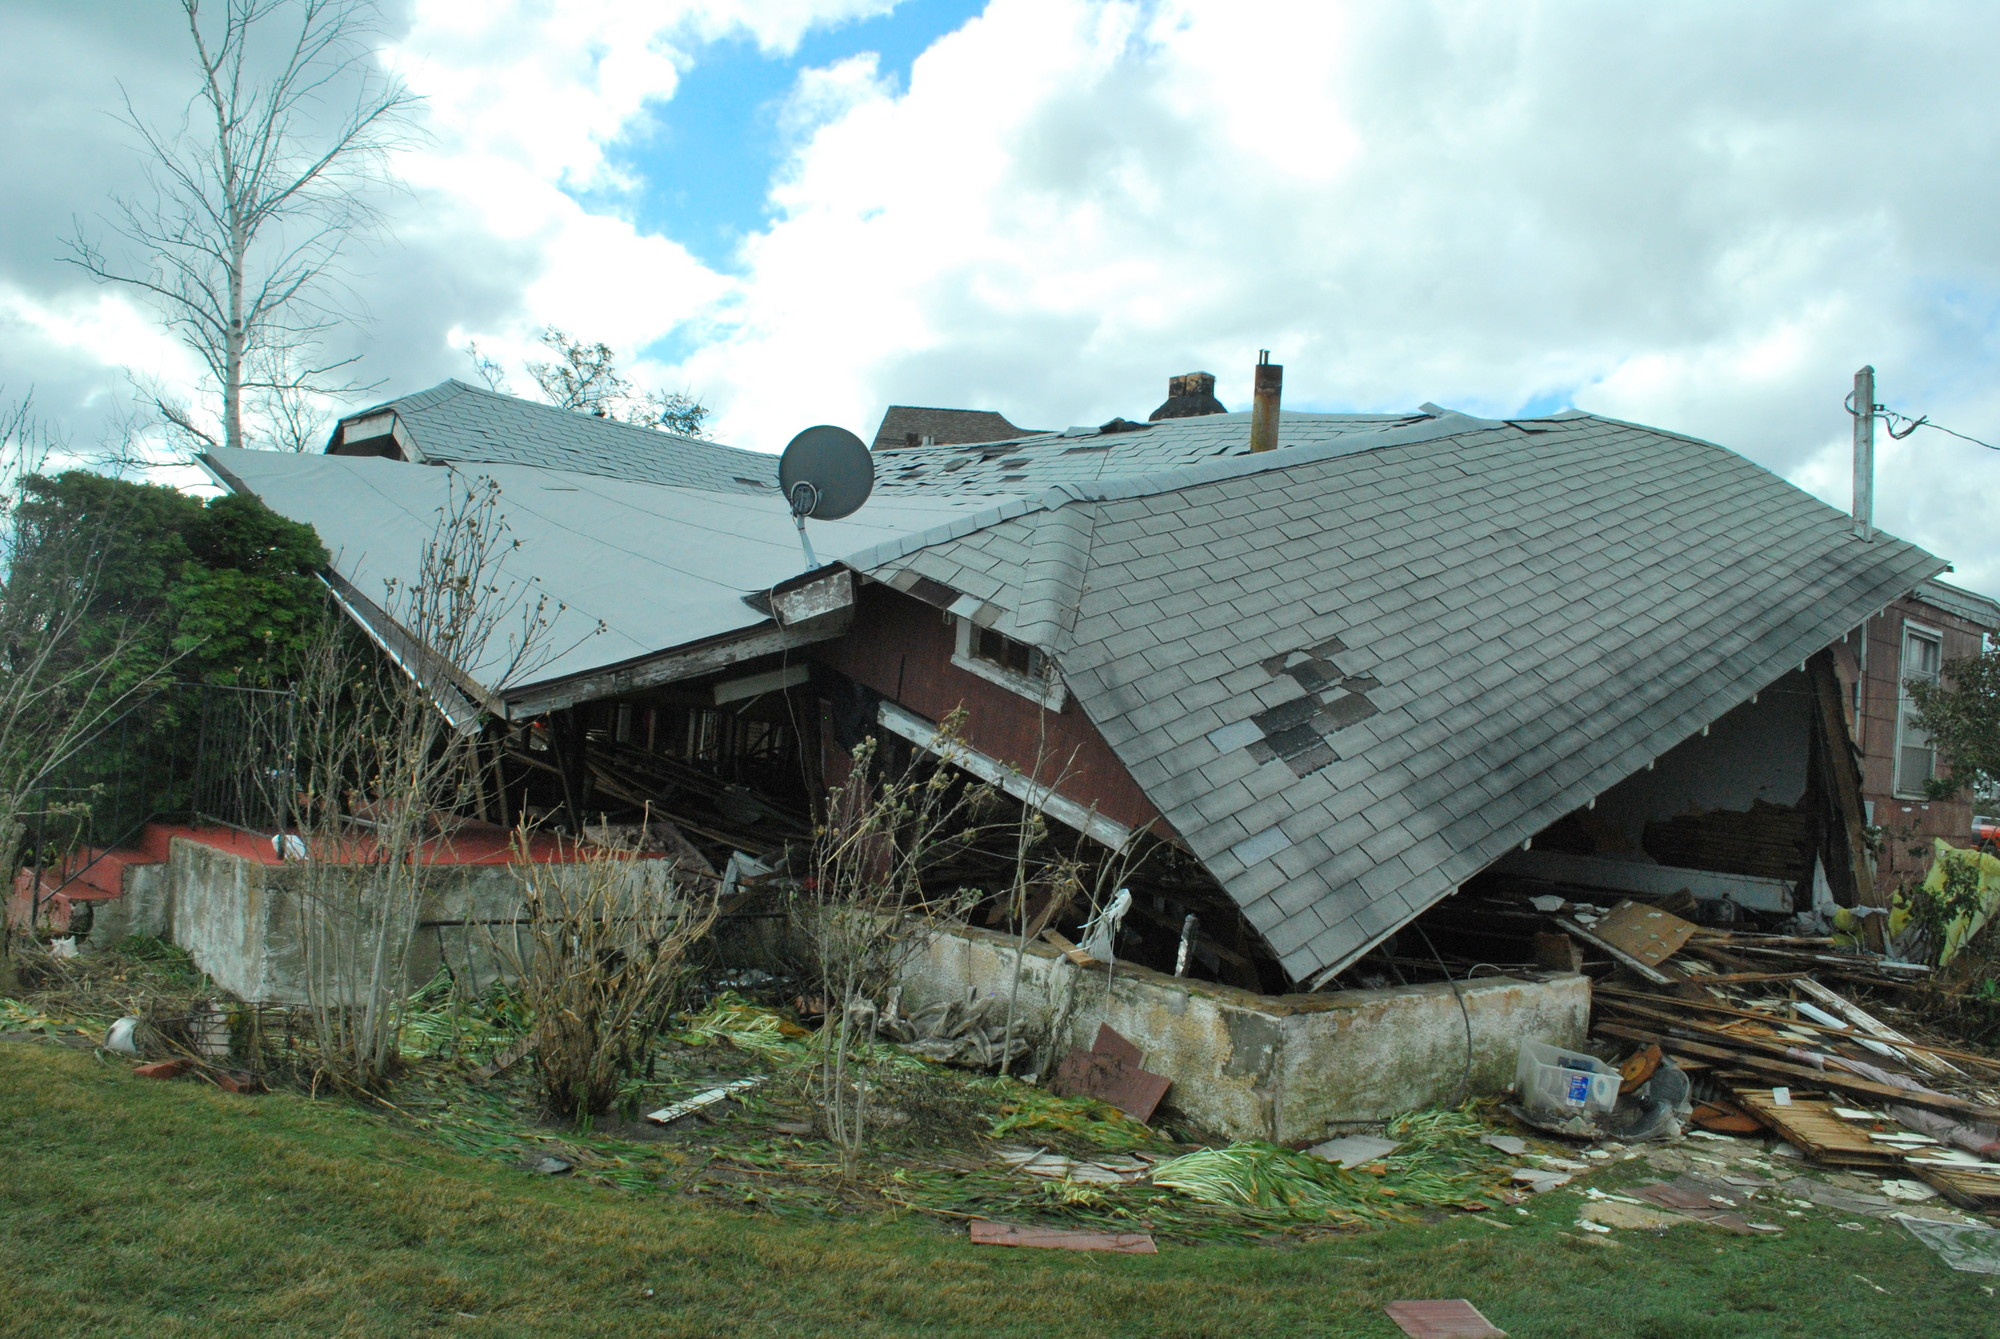 Hurricane Sandy destroyed a house in Baldwin Harbor. County Executive Edward Mangano has announced a �property-tax stabilization� plan that should reduce taxes on properties that Hurricane Sandy damaged and hold property taxes level for others.